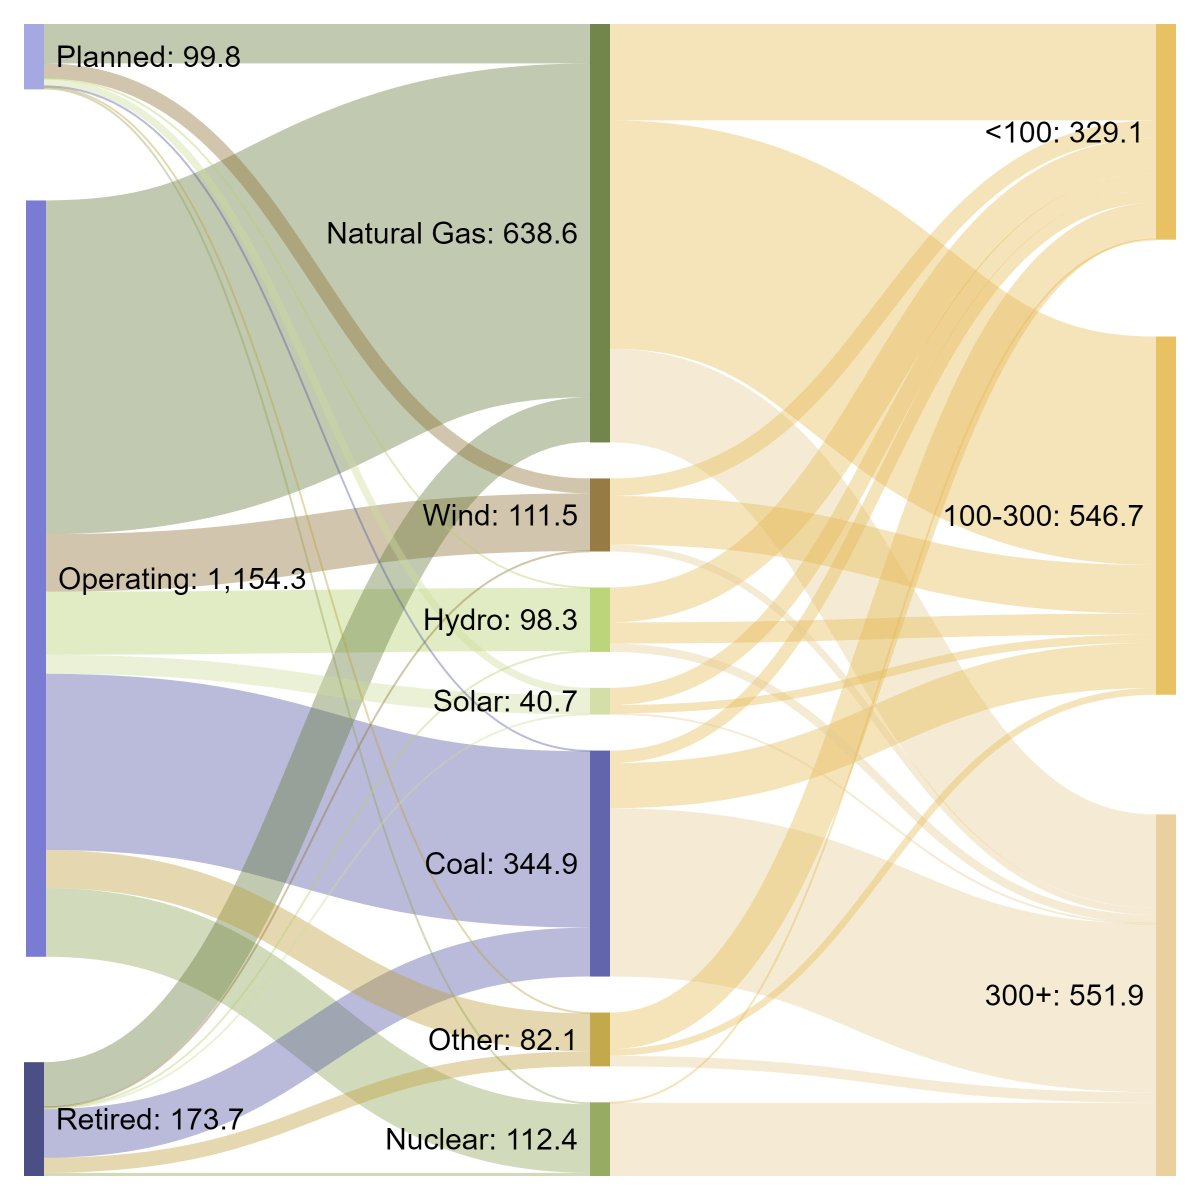 Alex Gilbert On Twitter I Made A Sankey Diagram Of Us Power Natural Gas Plant Capacity By Operating Status Fuel Source And In Gw